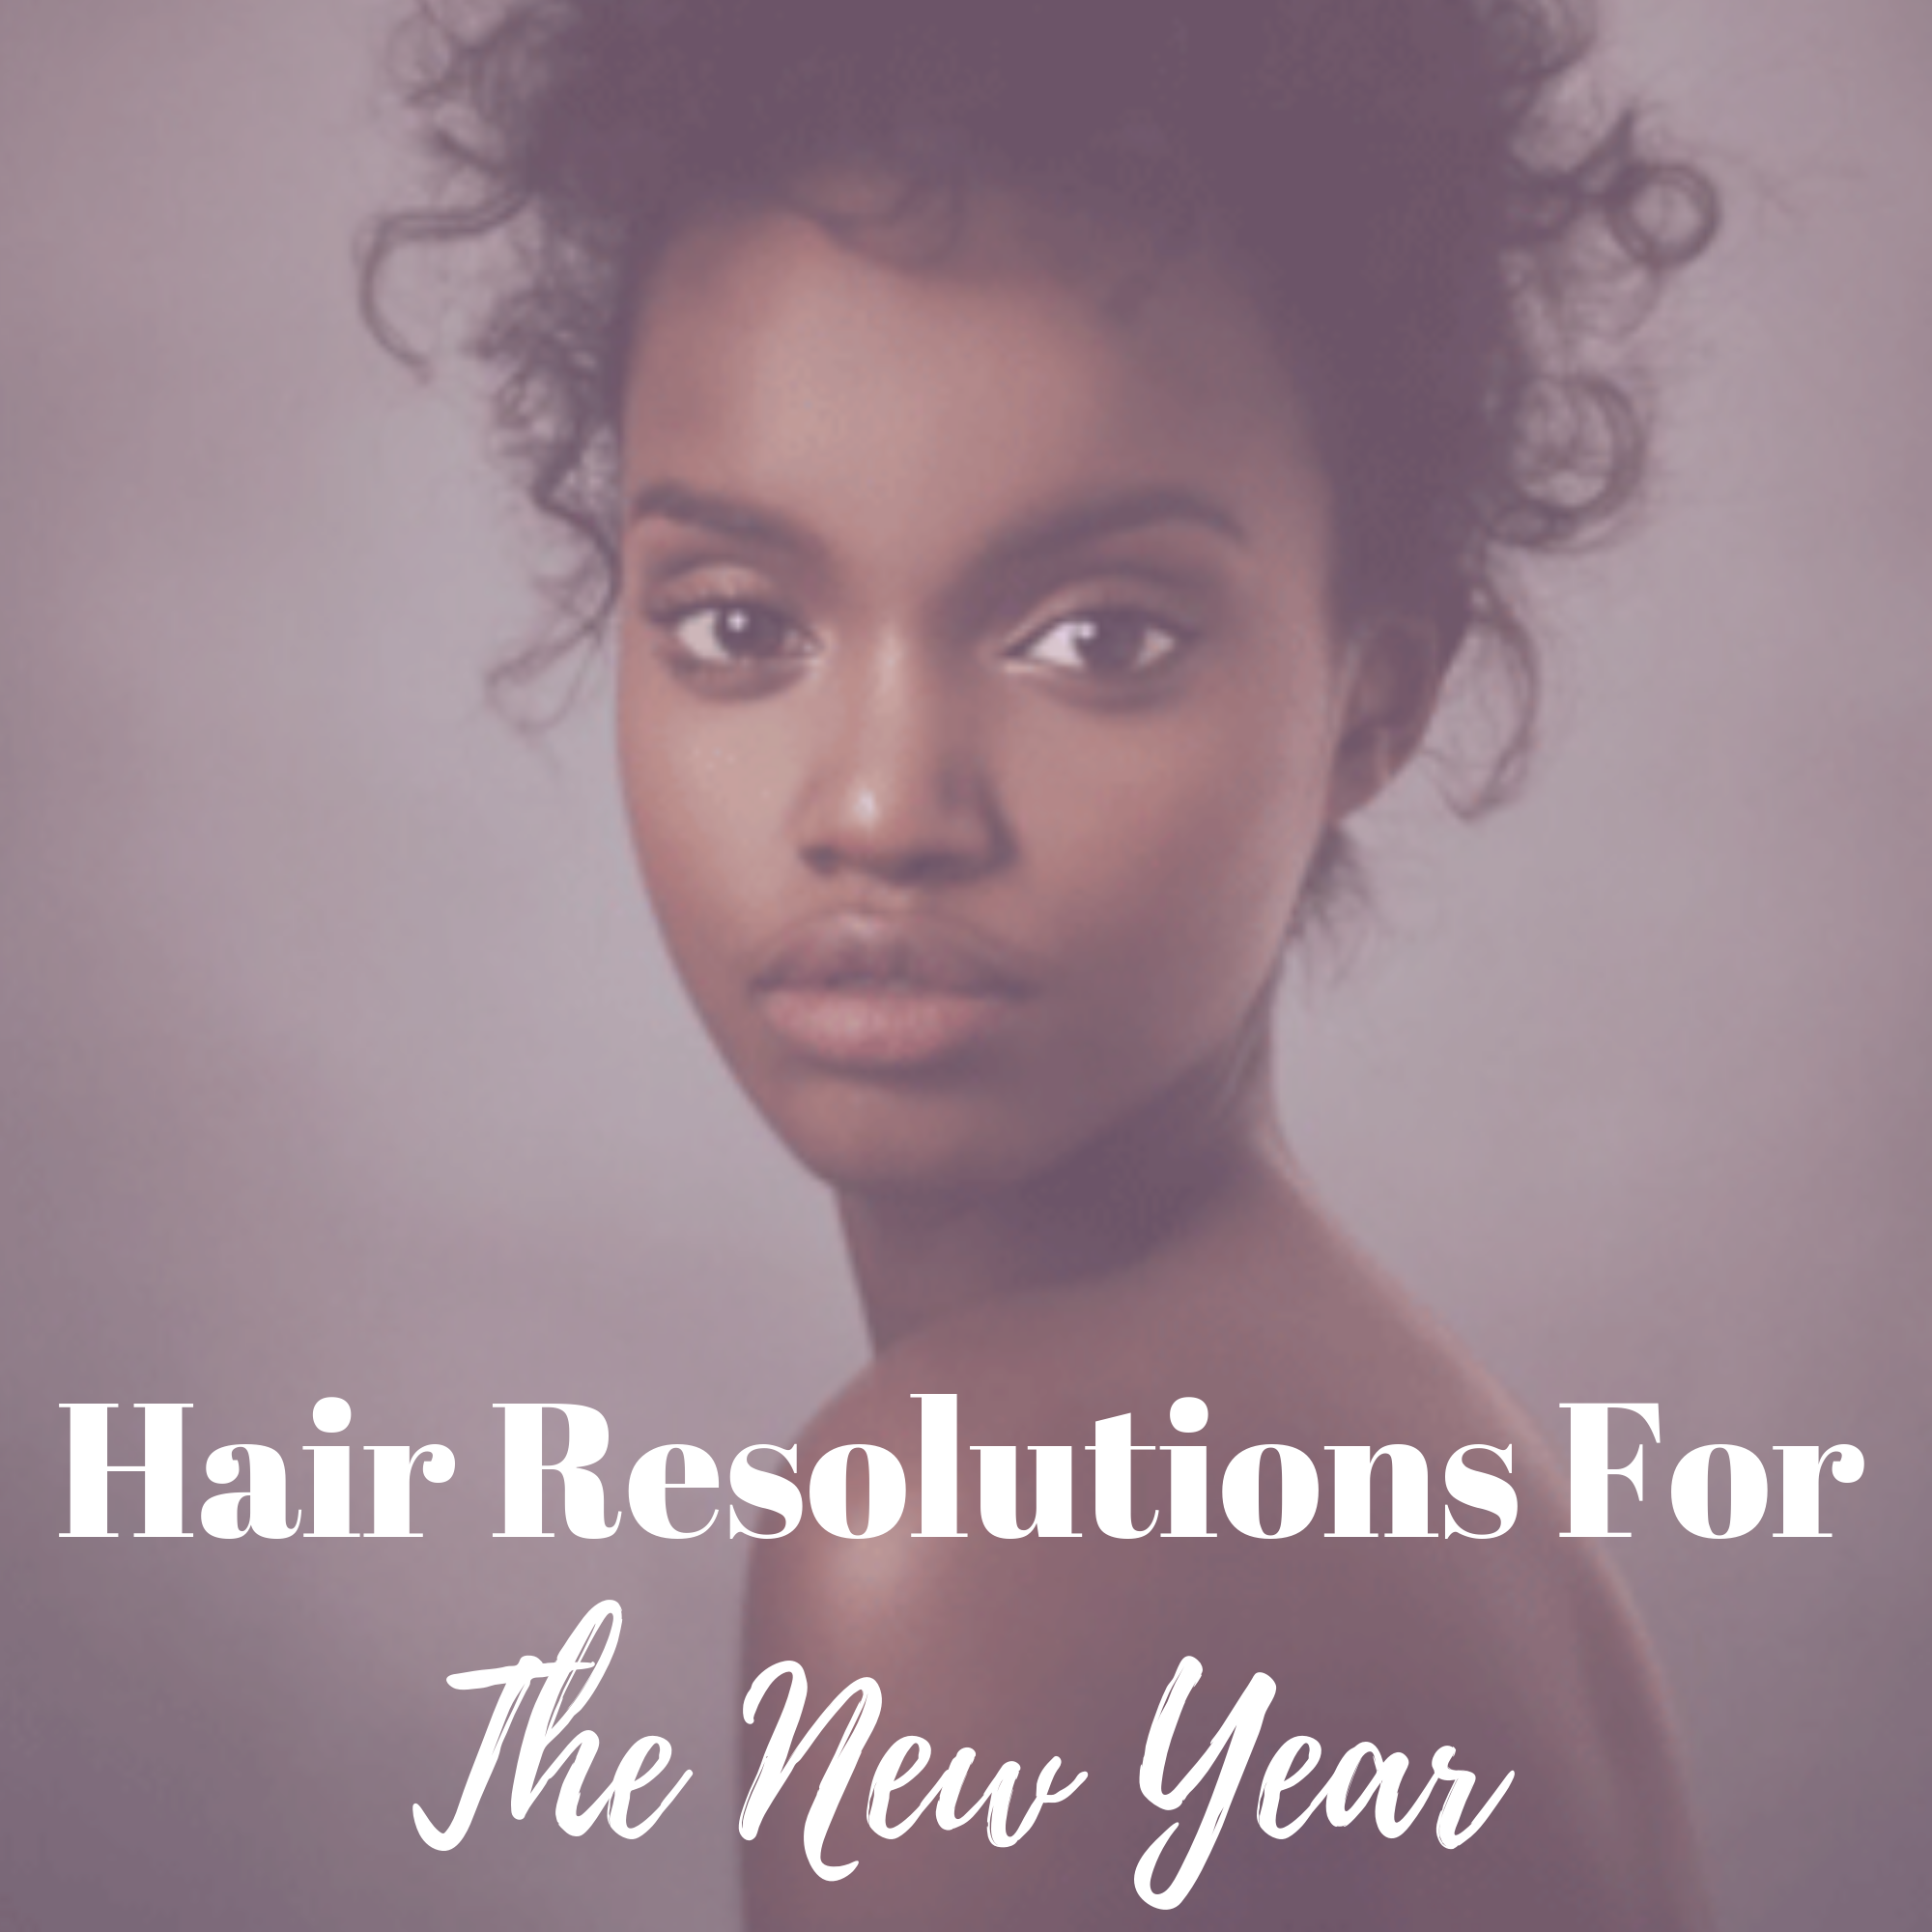 HAIR RESOLUTIONS FOR THE NEW YEAR